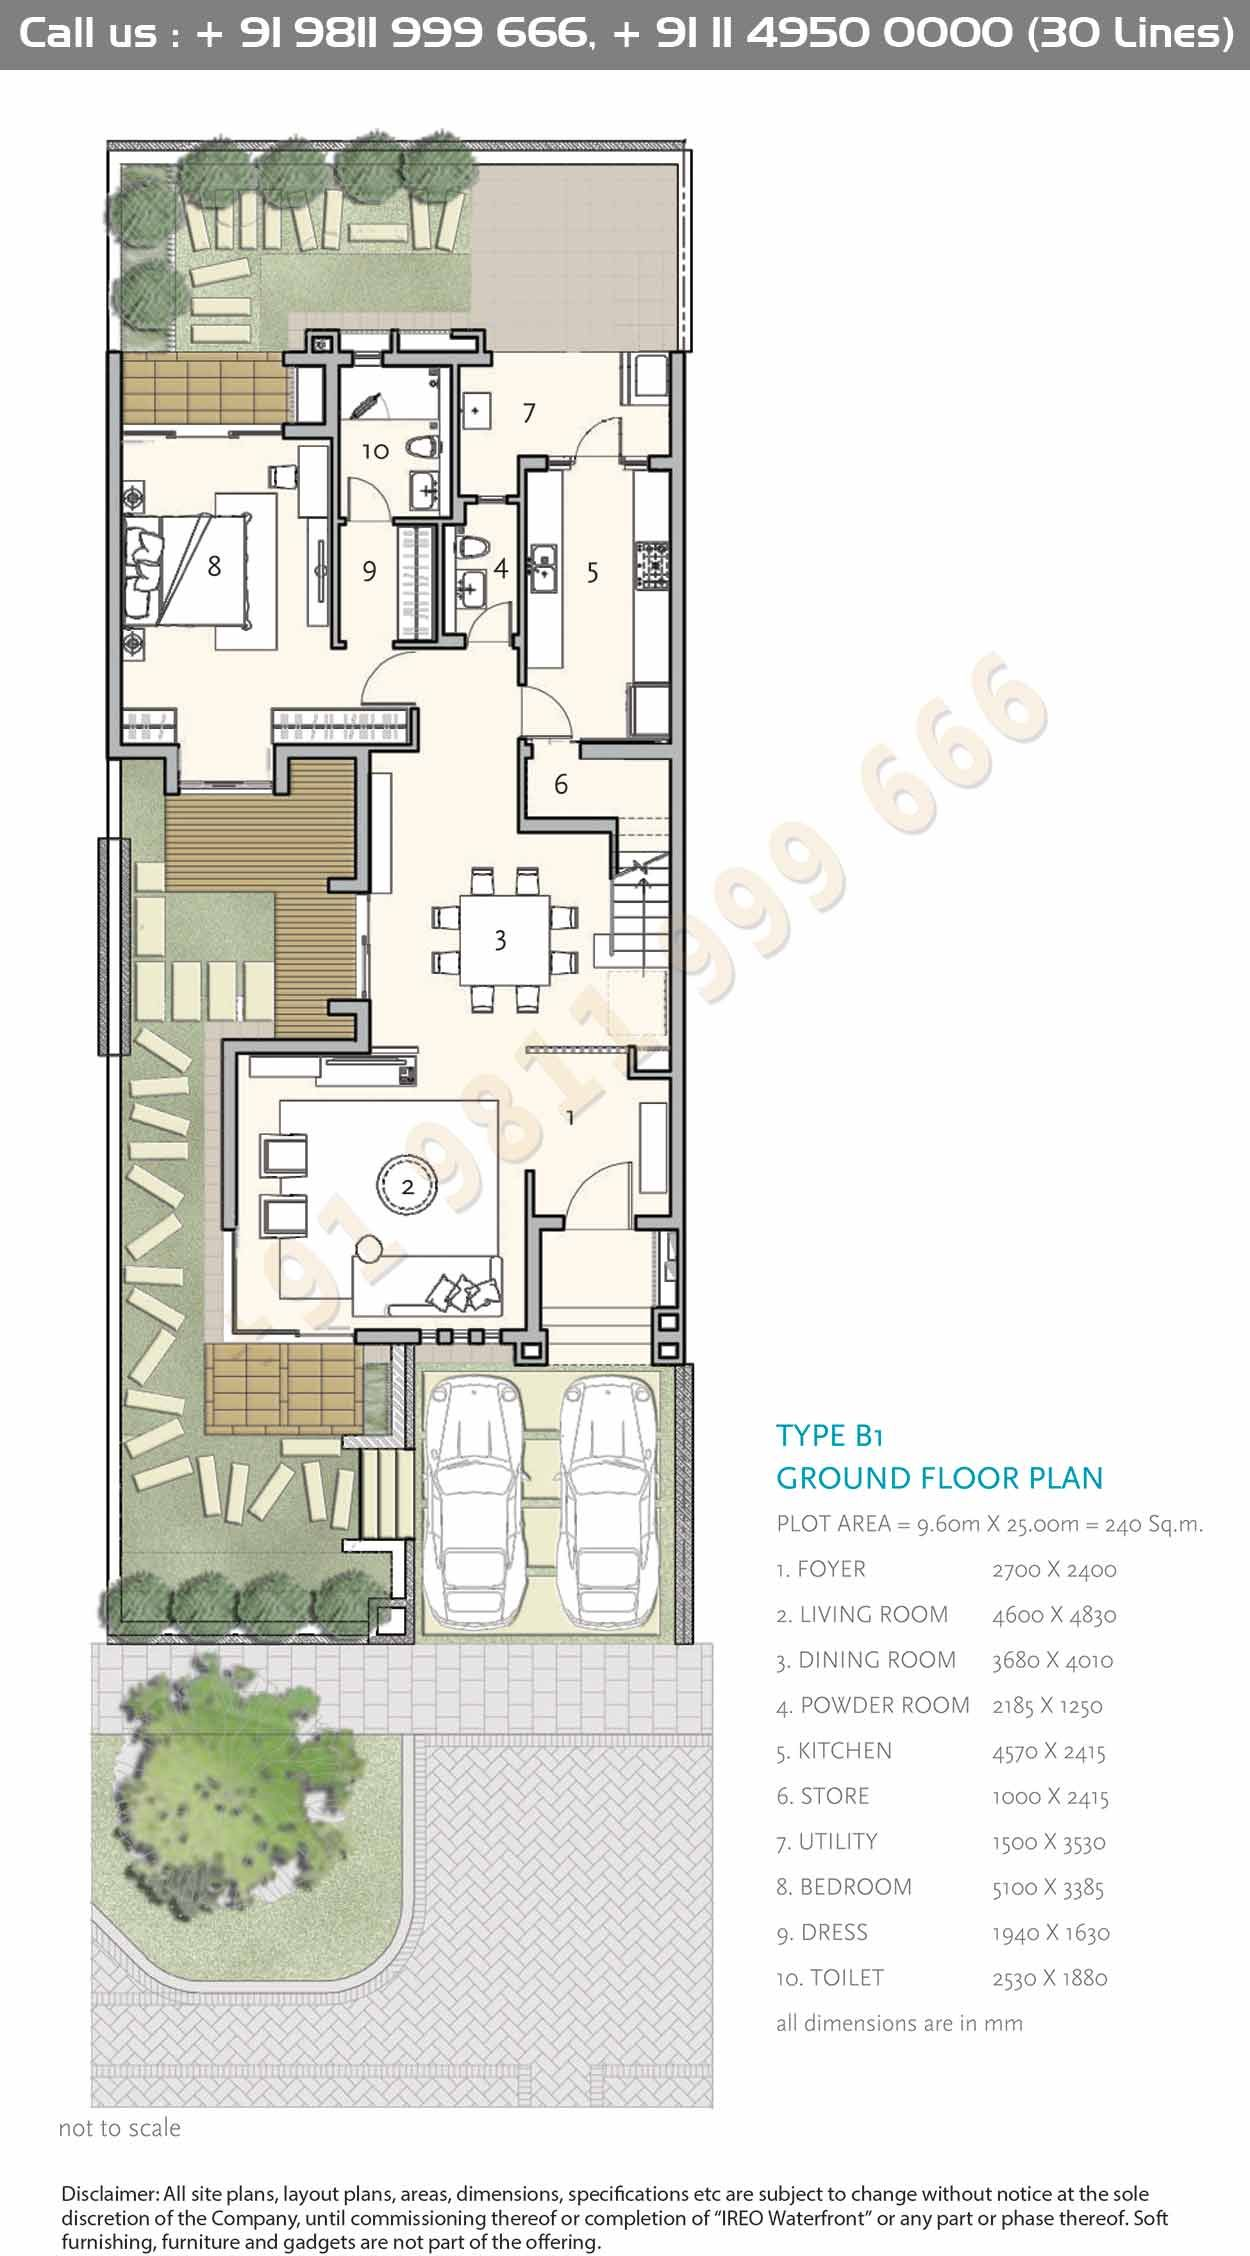 Type B1 Ground Floor Plan Courtyard House Plans House Construction Plan Architectural Floor Plans